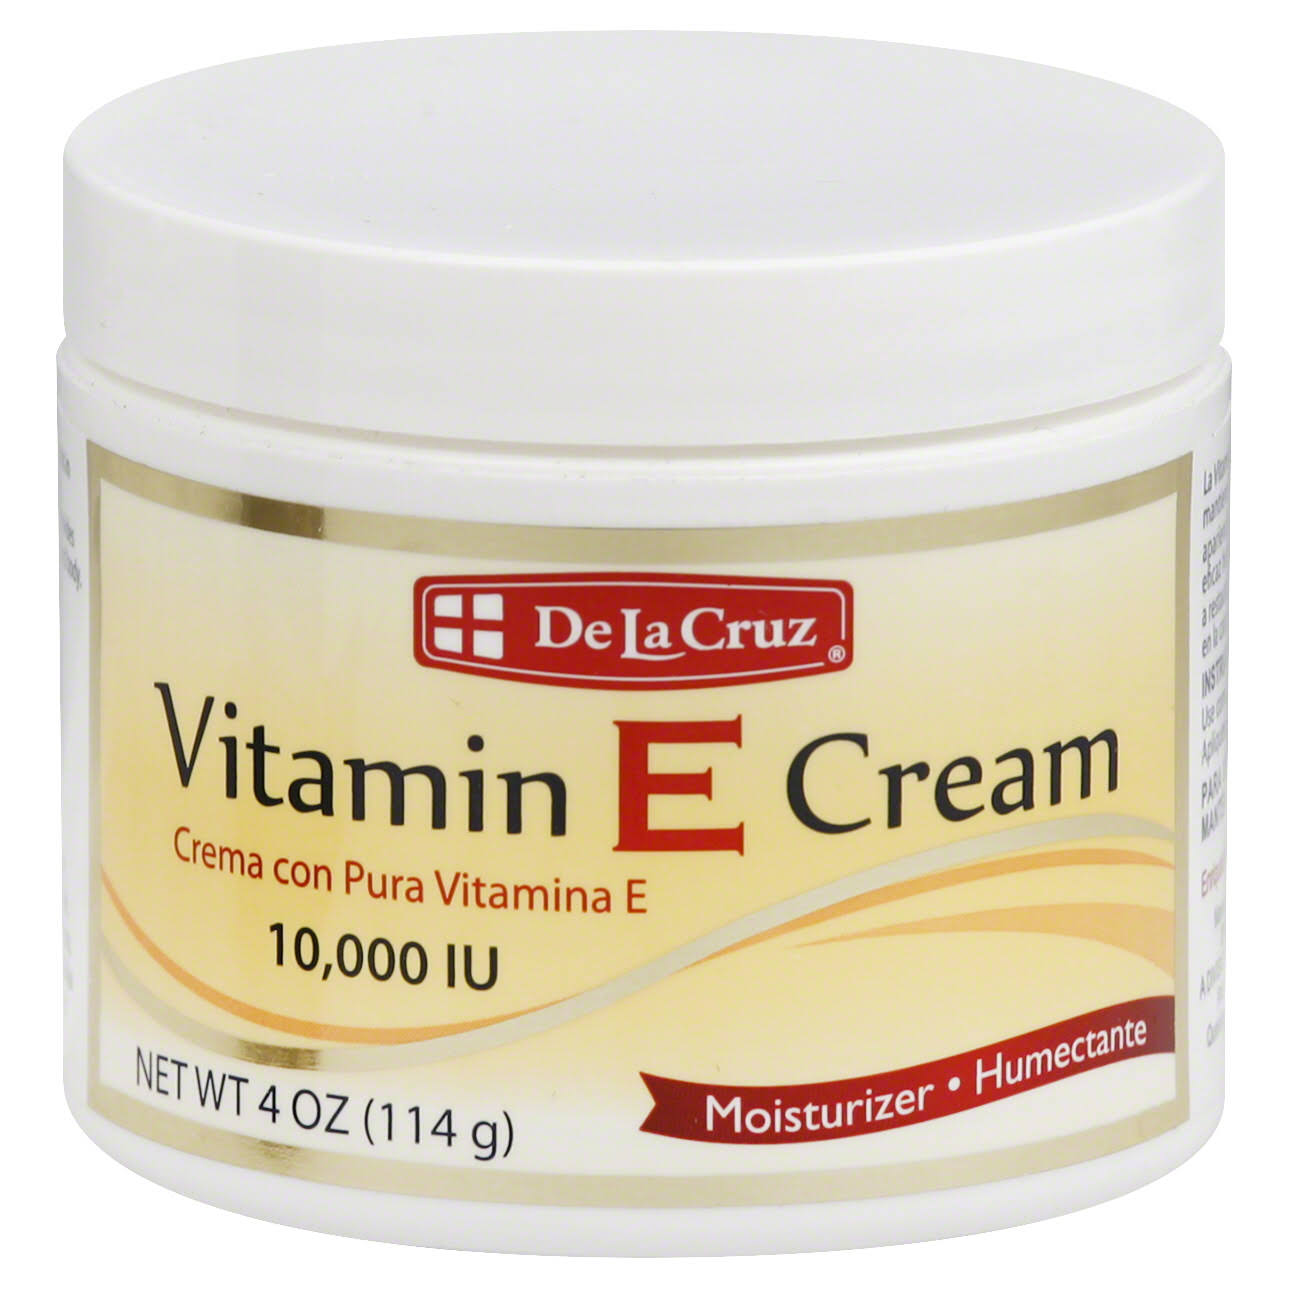 De La Cruz Vitamin E Cream Moisturizer - 4oz